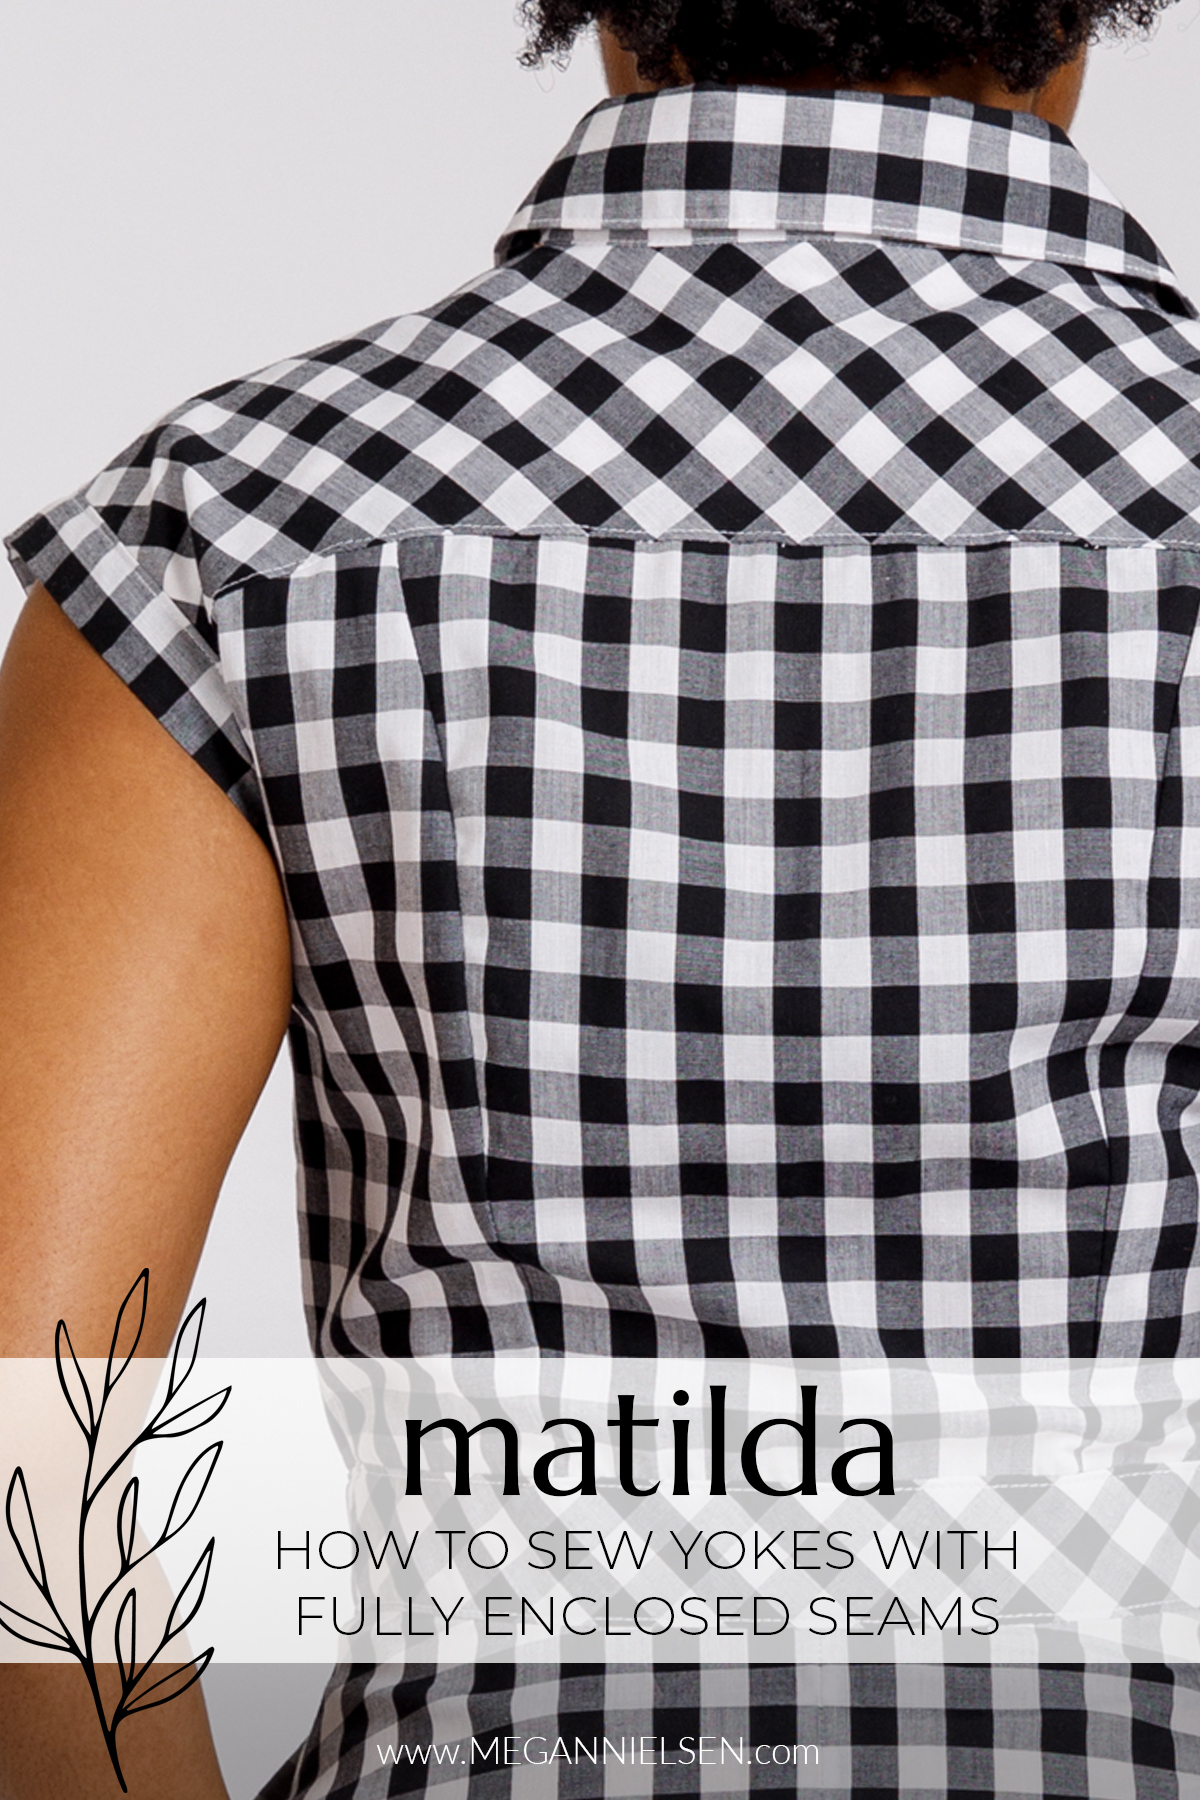 Matilda - How to sew yokes with fully enclosed seams